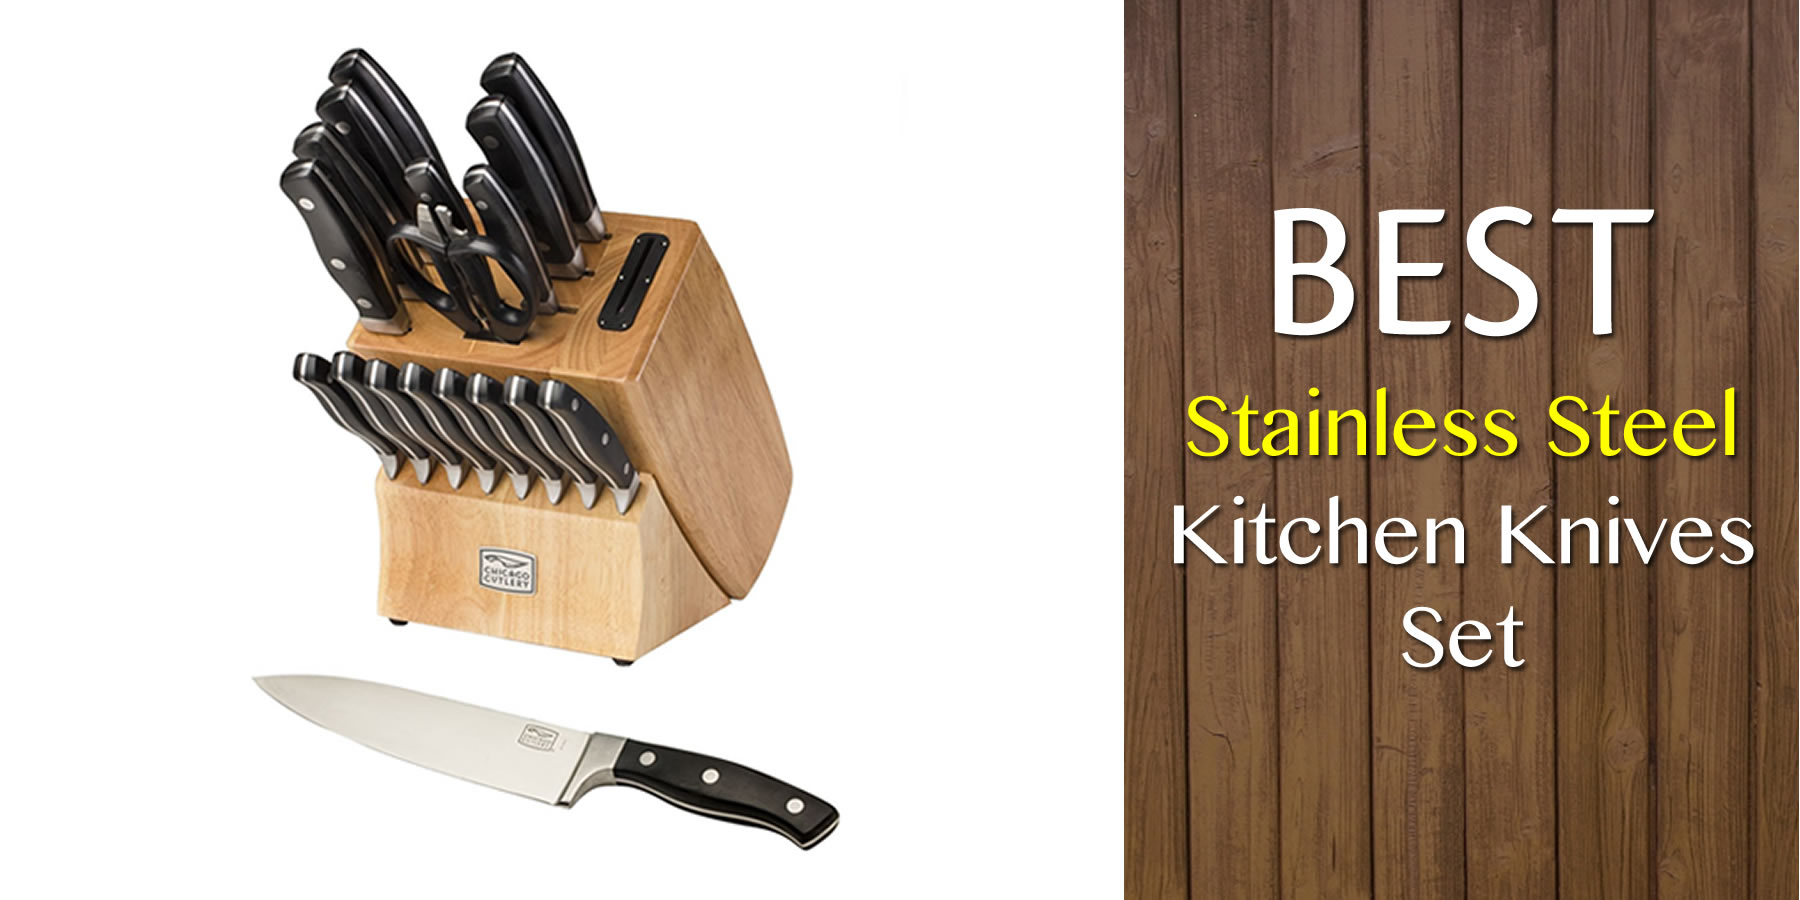 Best Stainless Steel Kitchen Knives Set Reviews and Guide for 2018